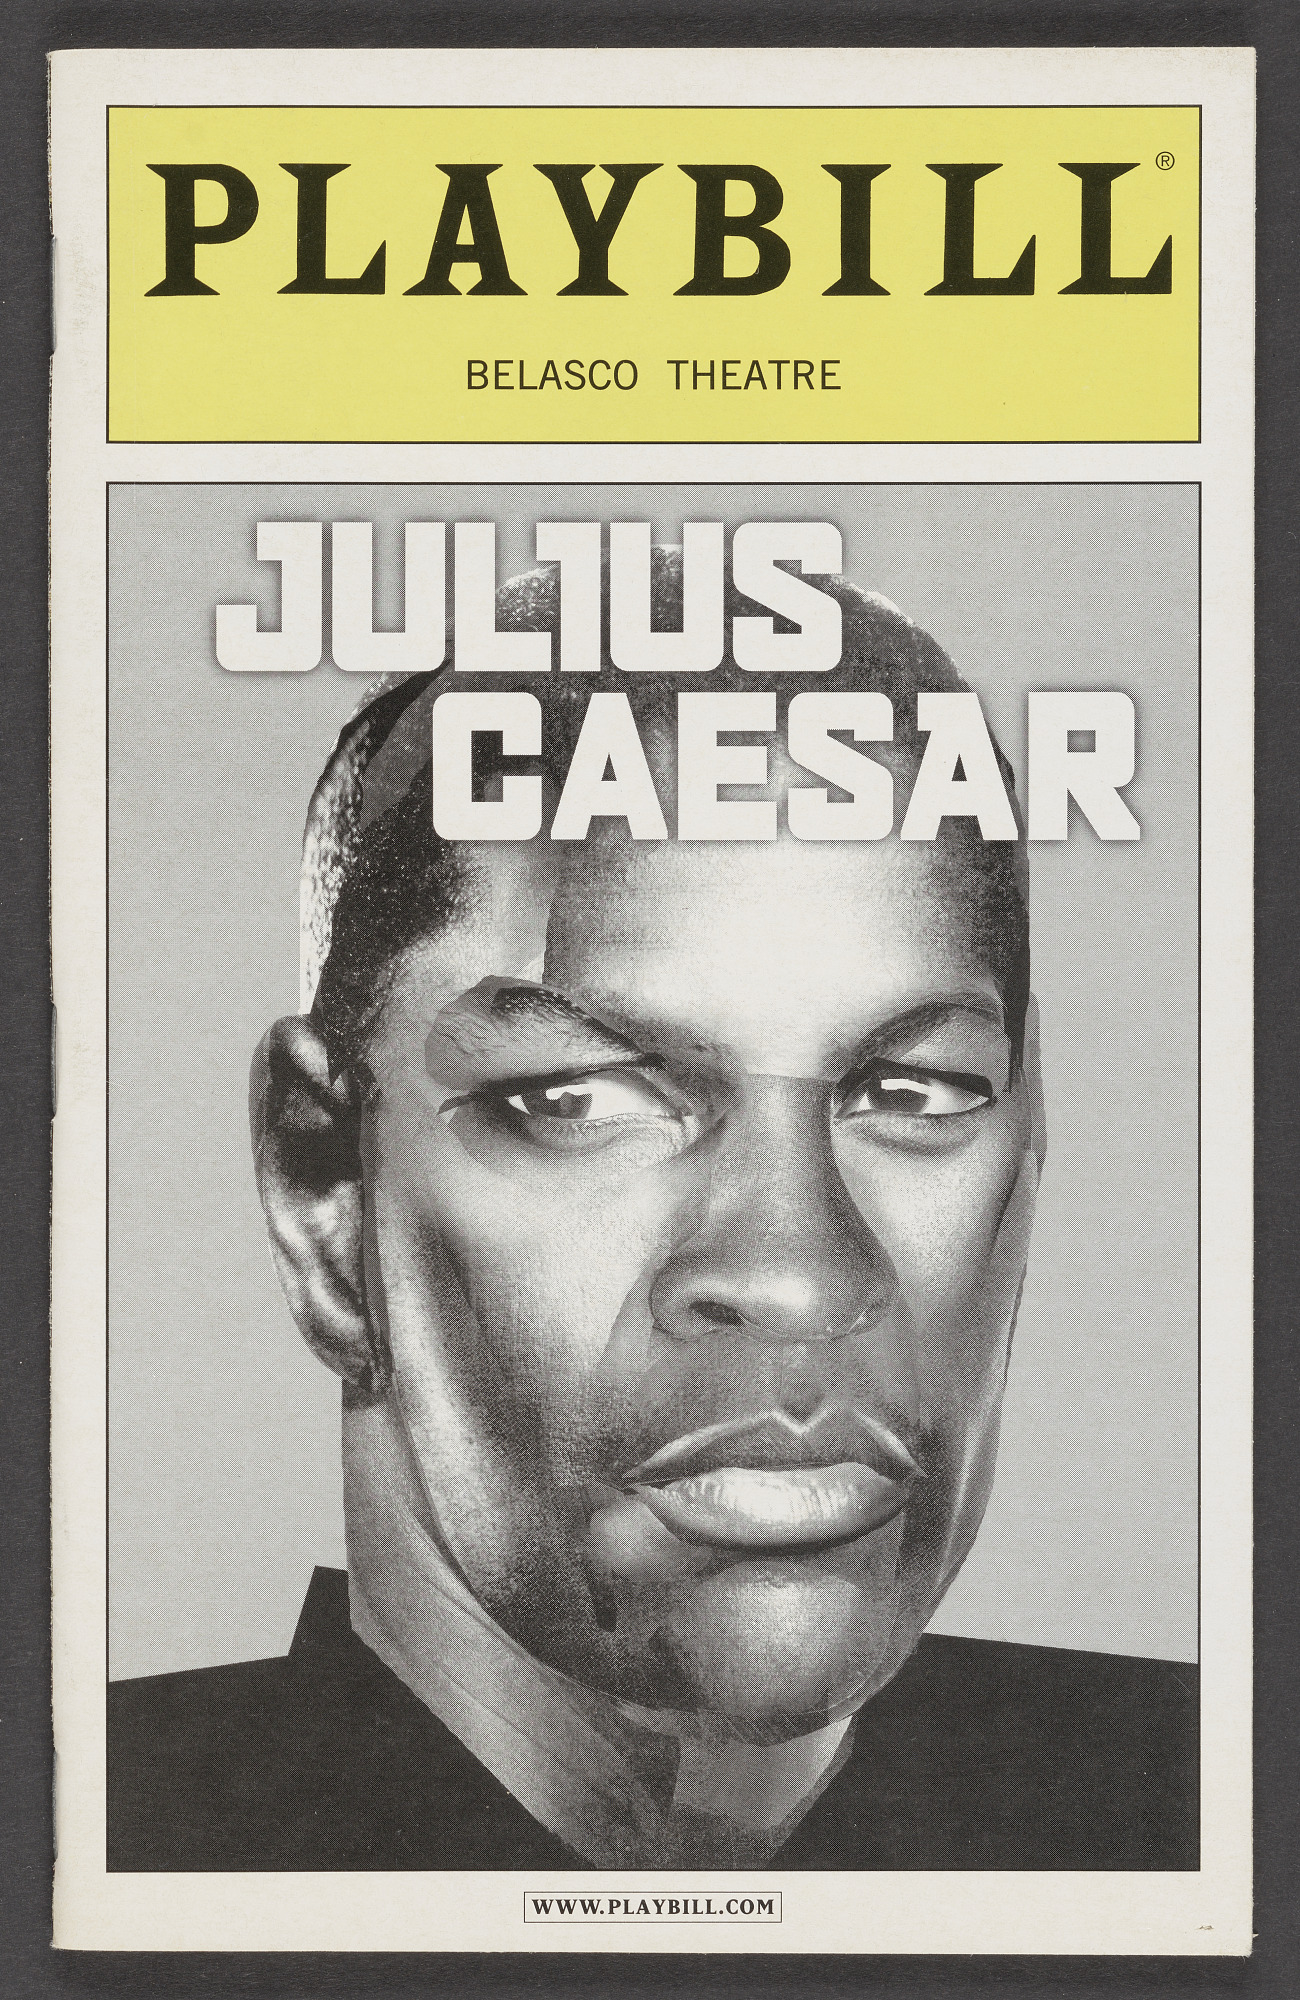 Image for Playbill for Julius Caesar